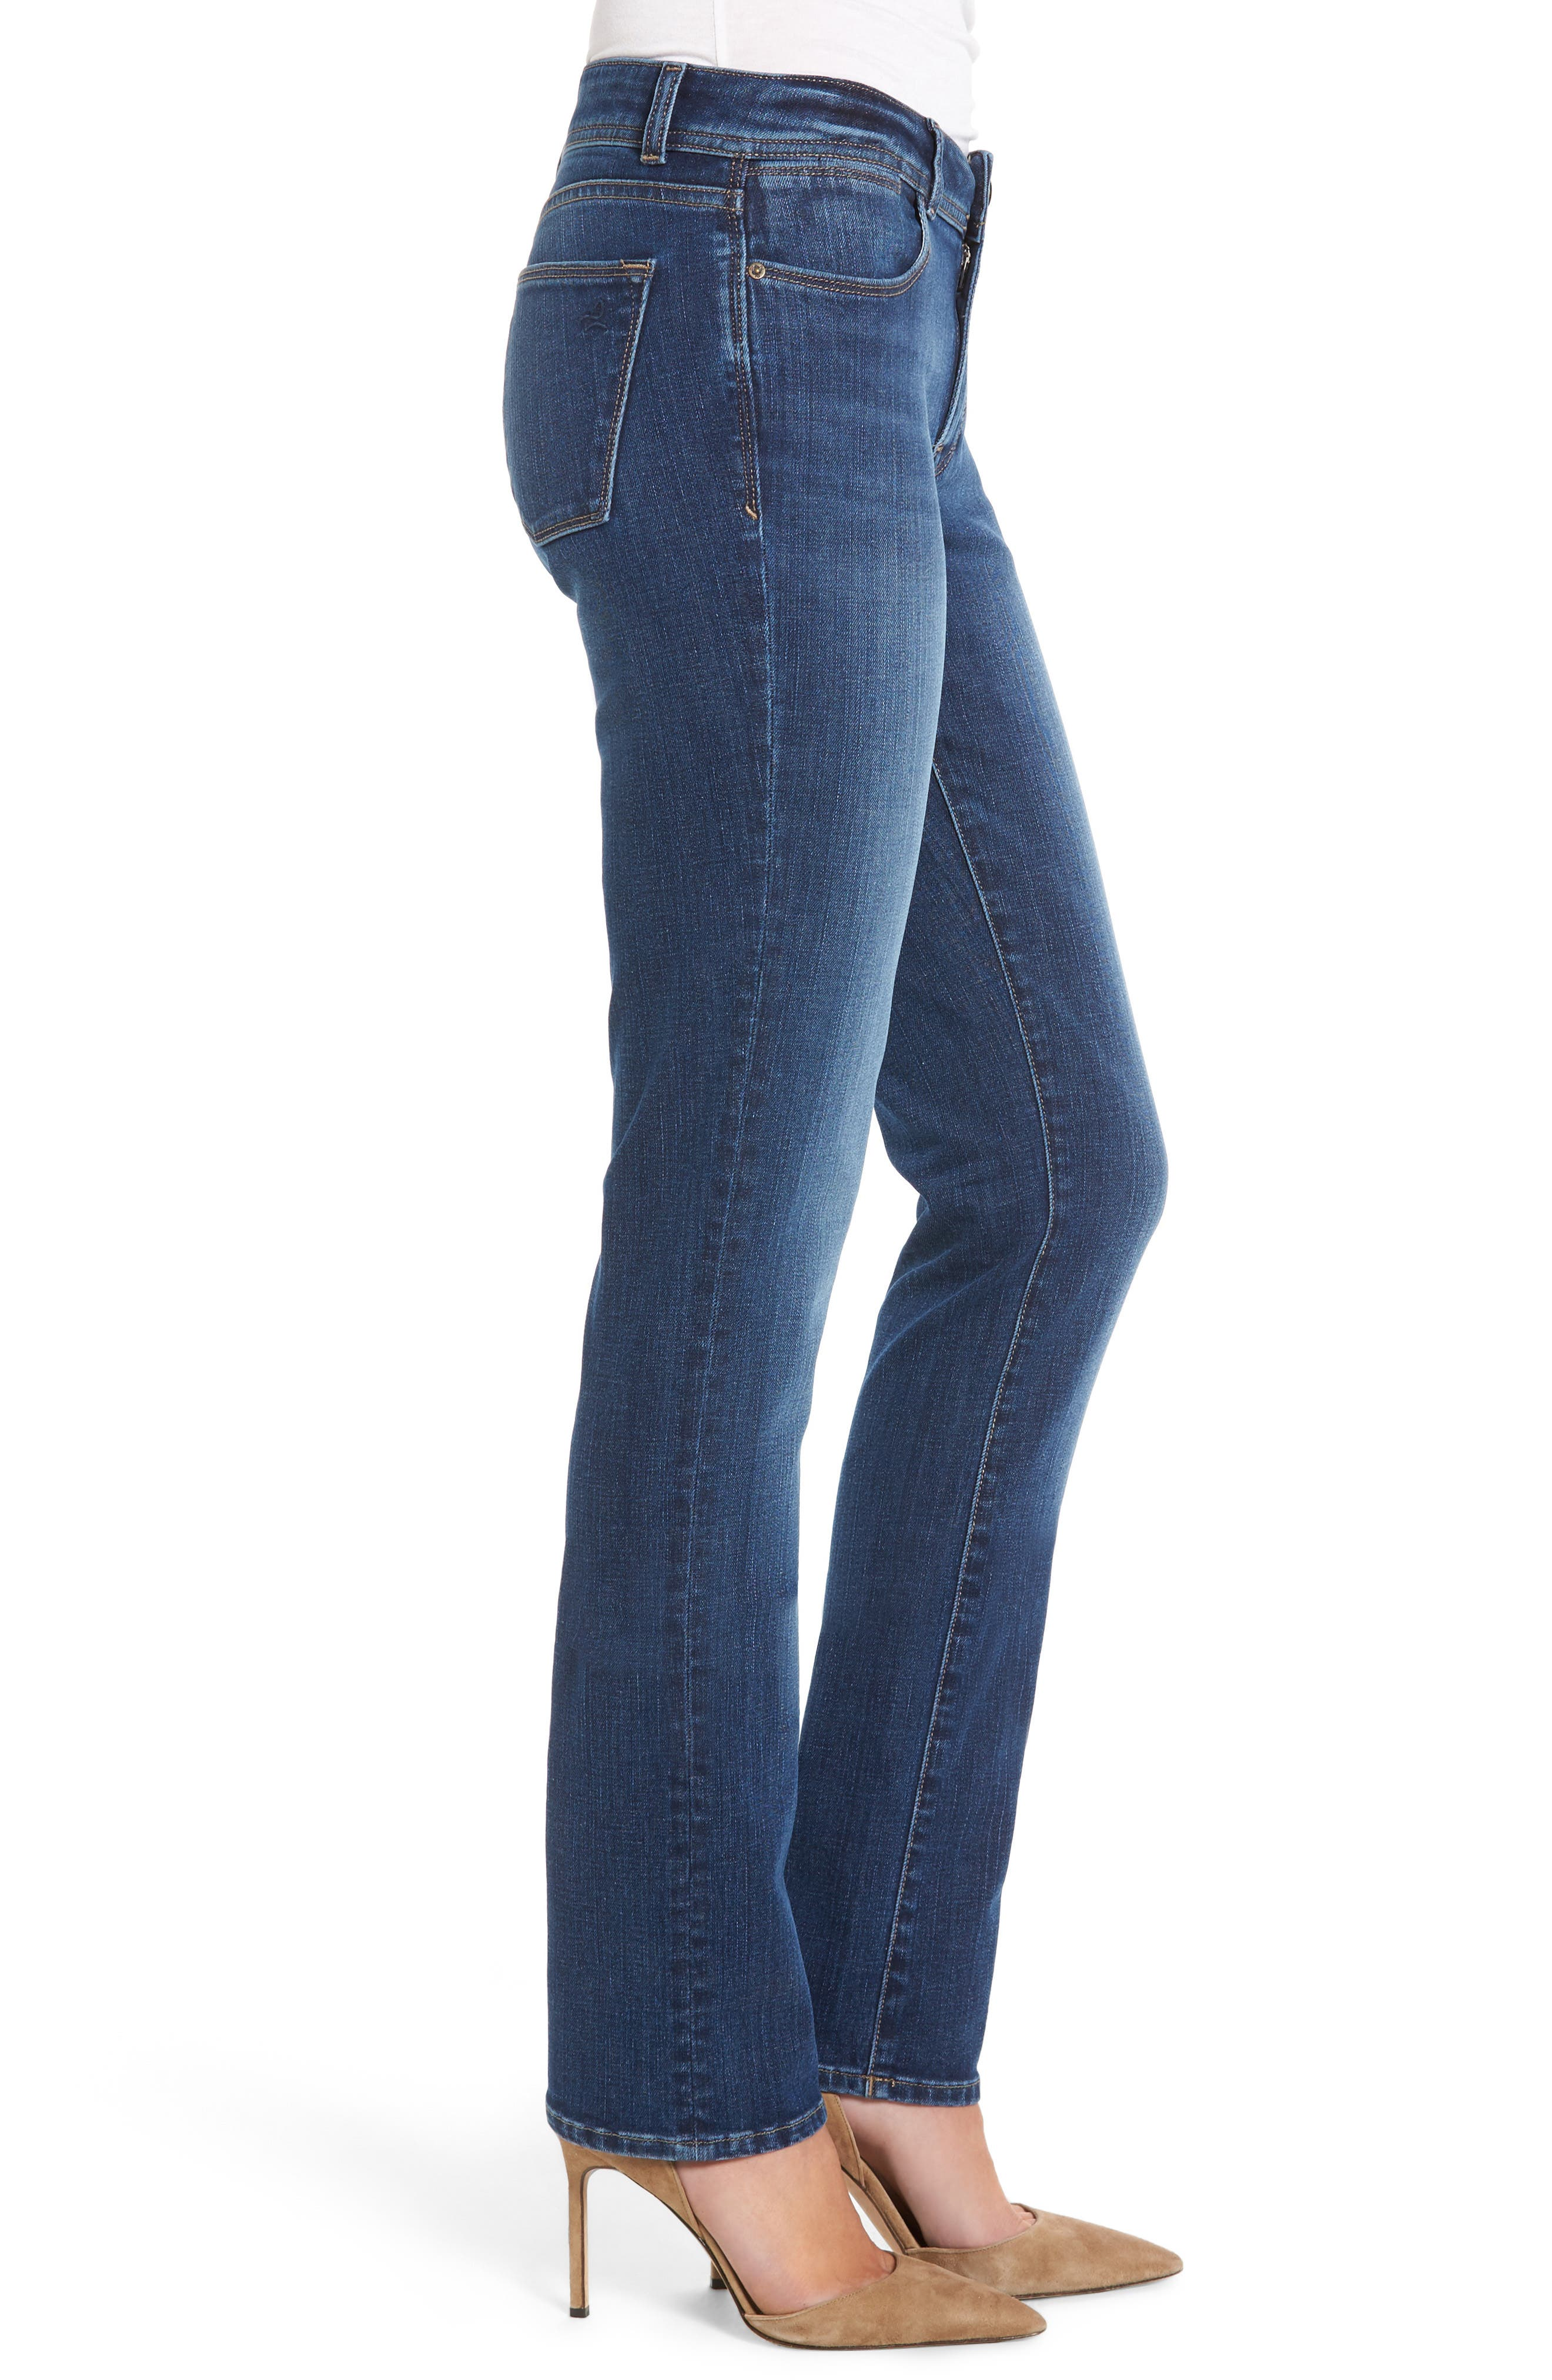 Coco Curvy Straight Leg Jeans,                             Alternate thumbnail 3, color,                             Pacific